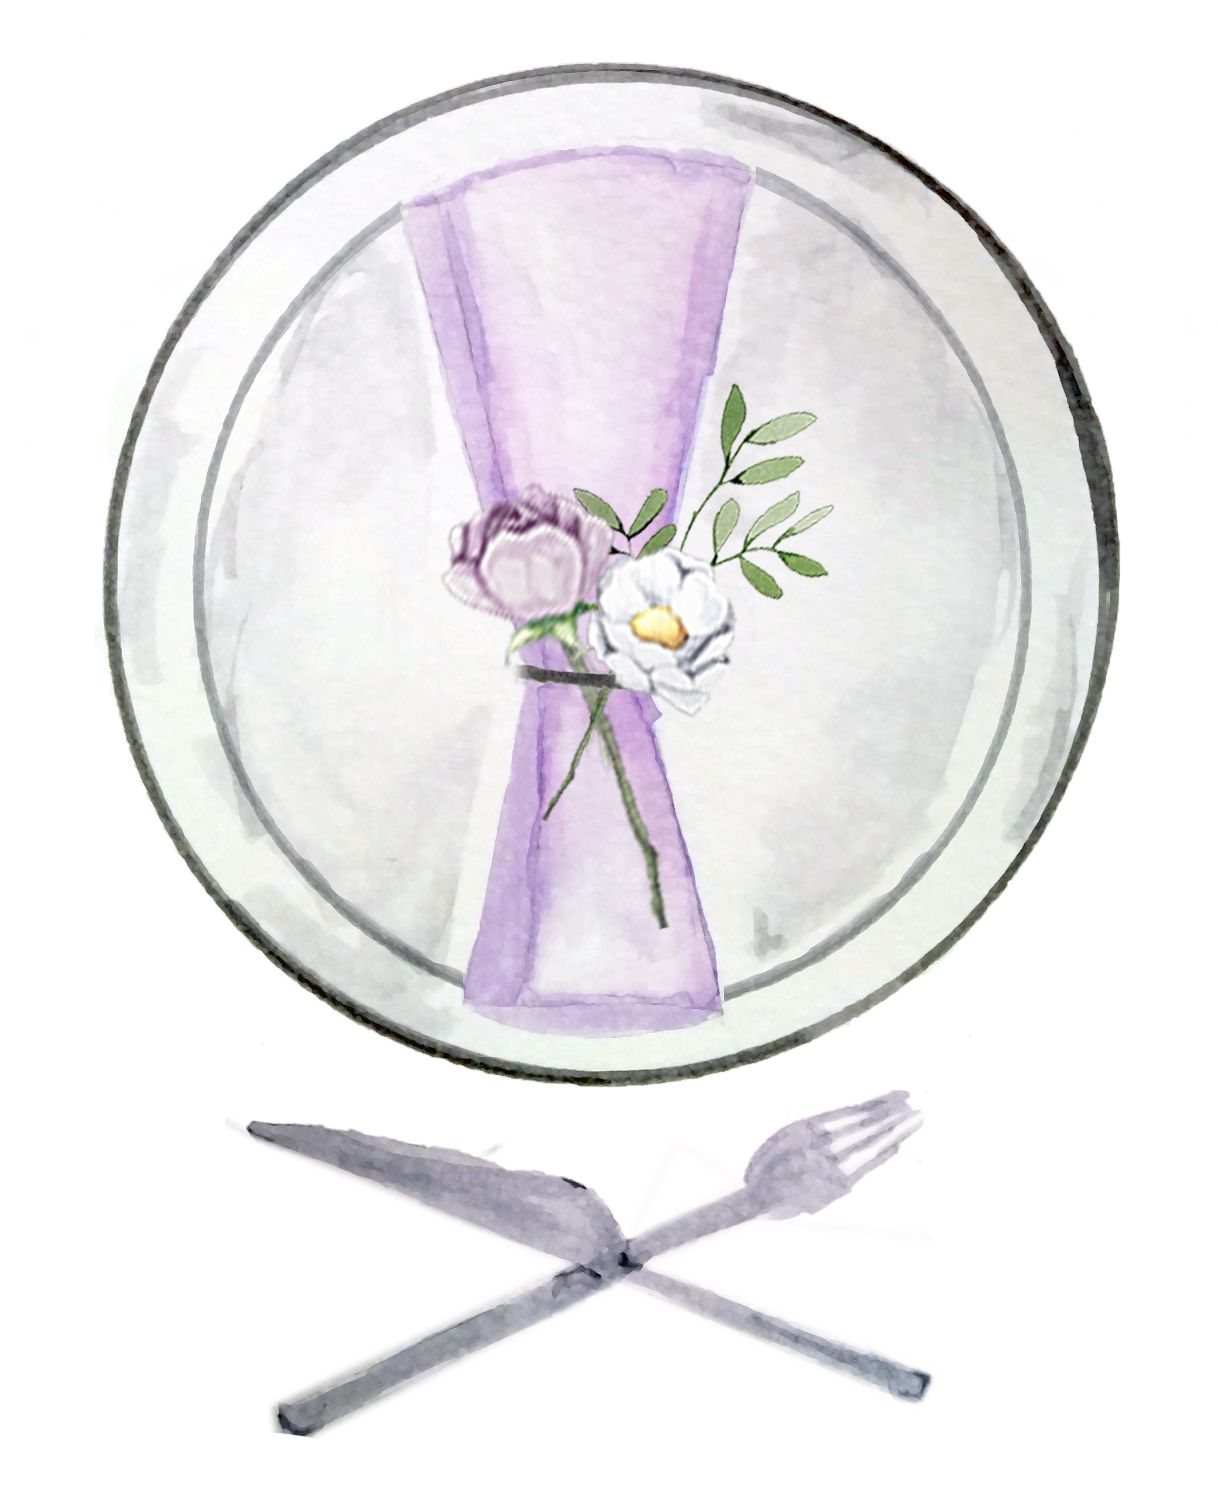 Plate and Utensils_Flowers.png